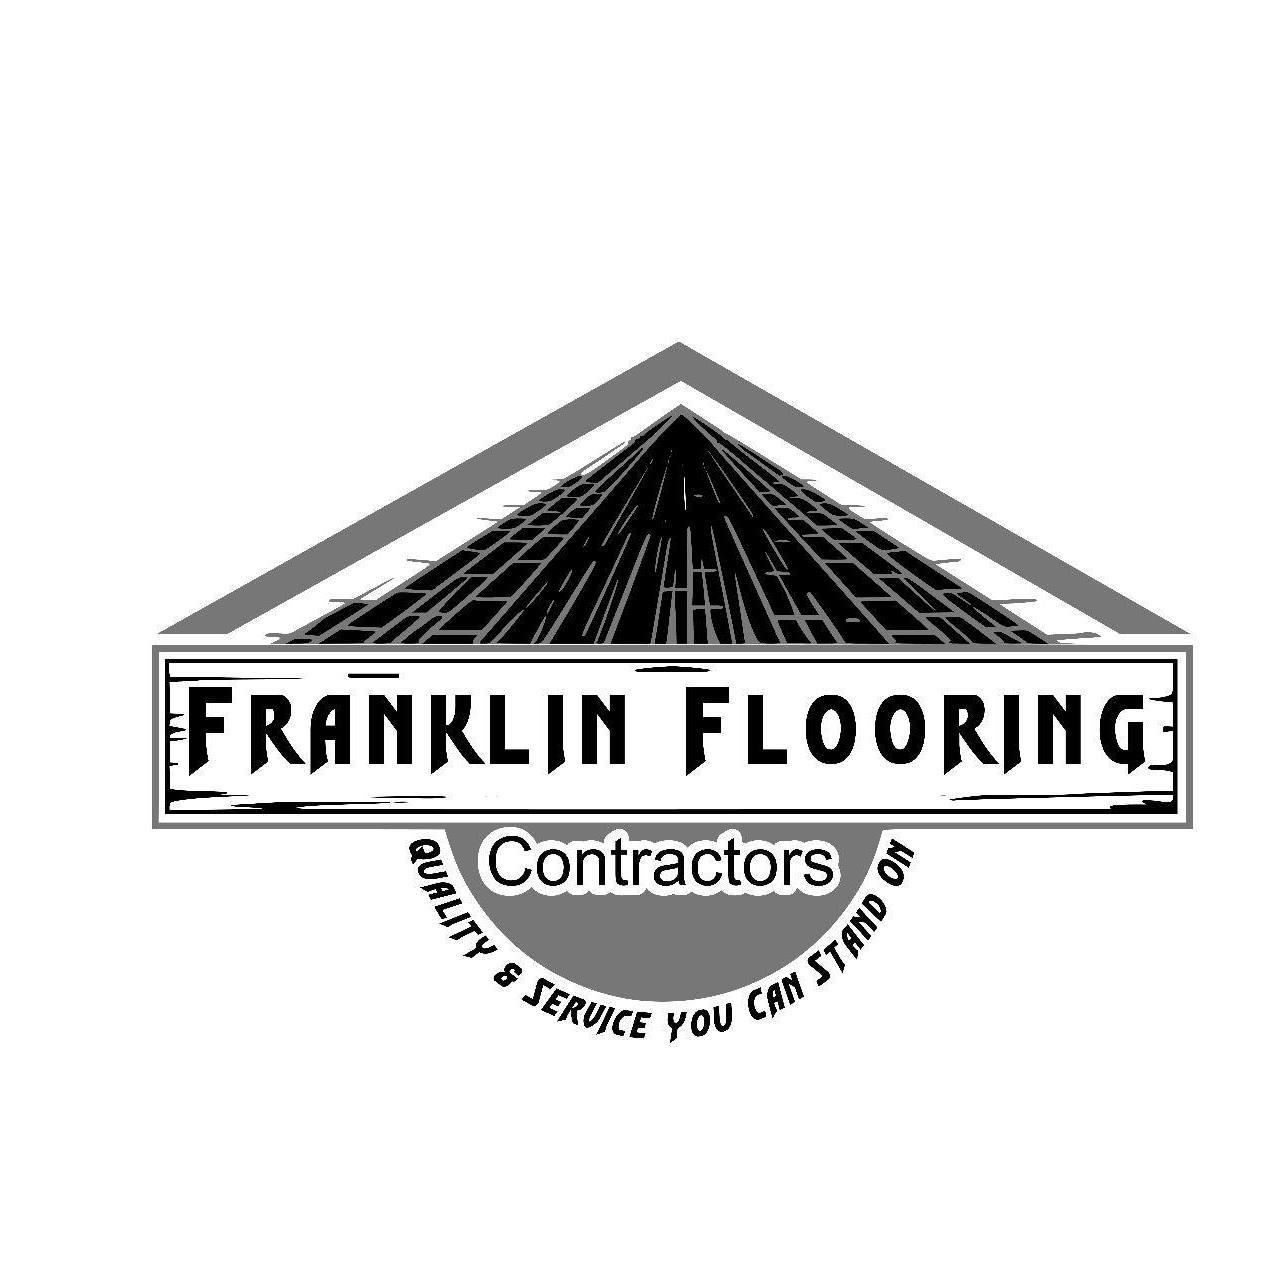 Franklin Flooring Contractors image 30